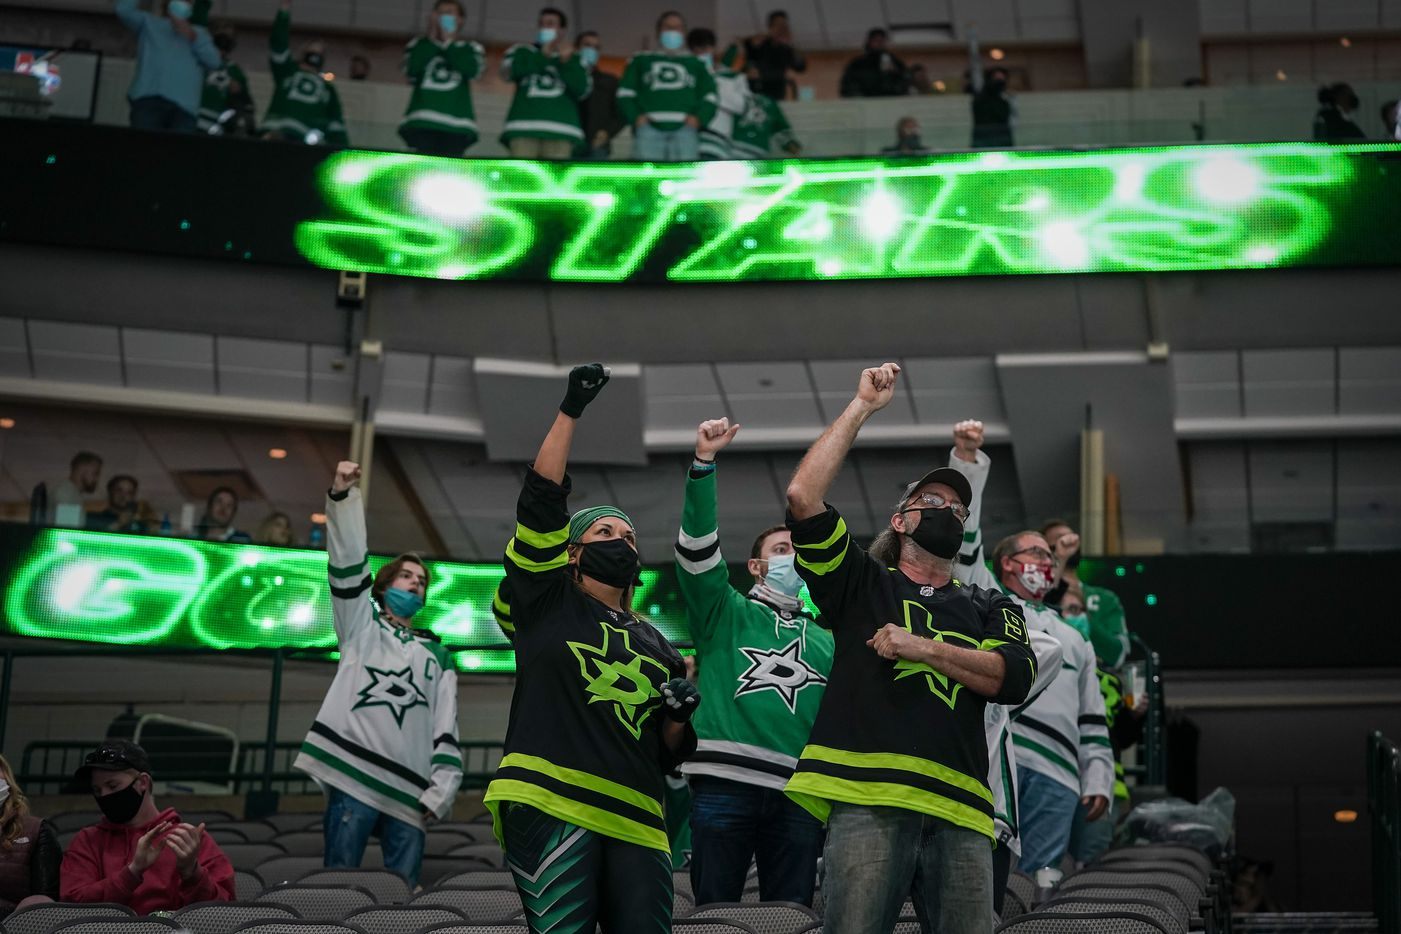 Dallas Stars fans cheer after a power play goal to tie the game during the second period of an NHL hockey game against the Tampa Bay Lightning at the American Airlines Center on Thursday, March 25, 2021, in Dallas. (Smiley N. Pool/The Dallas Morning News)